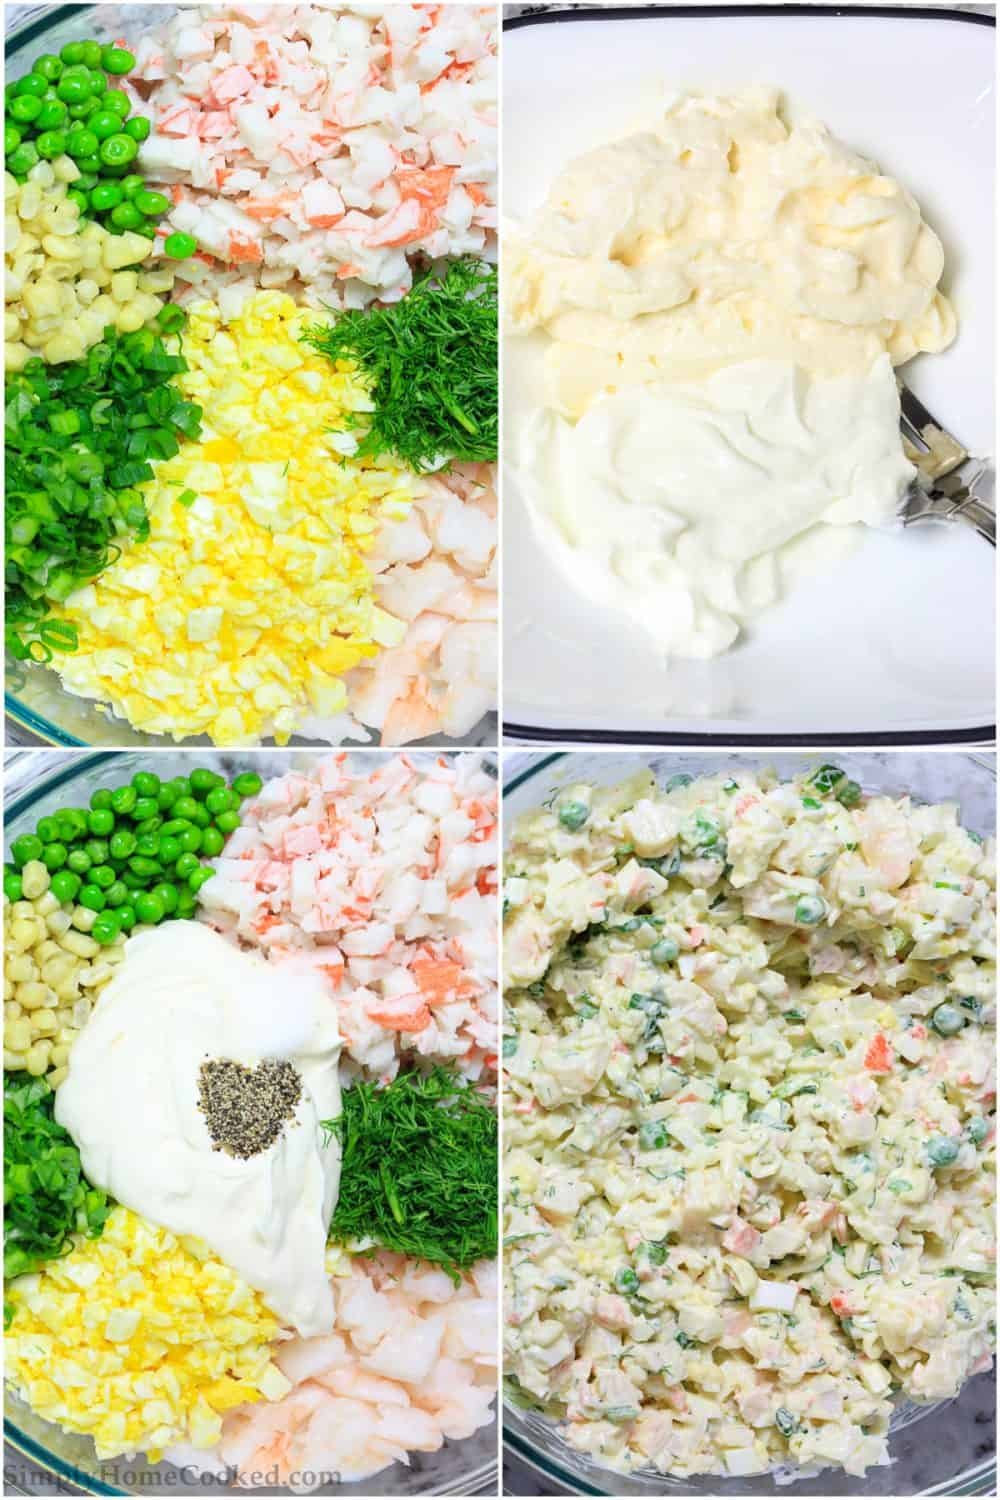 The small pieces of this delicious imitation crab salad make it a fun recipe to make and serve as a party appetizer or a great luncheon for your guests.